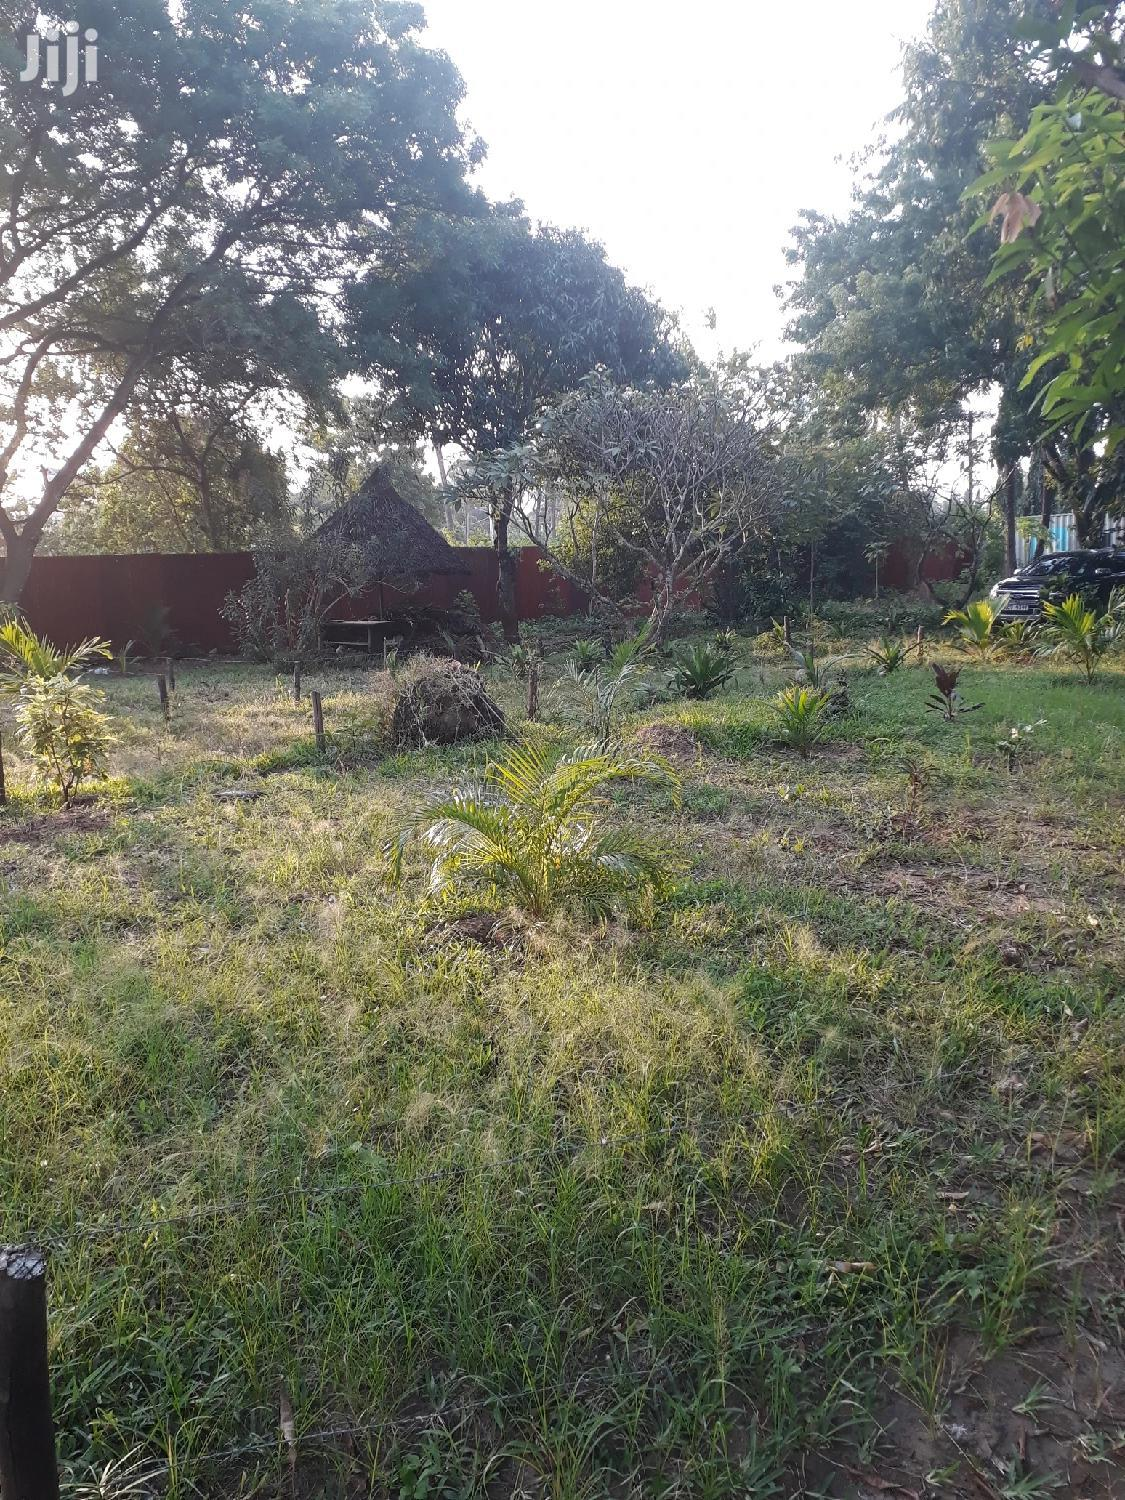 To Let Yard With Houses Mtwapa | Houses & Apartments For Rent for sale in Mtwapa, Kilifi, Kenya